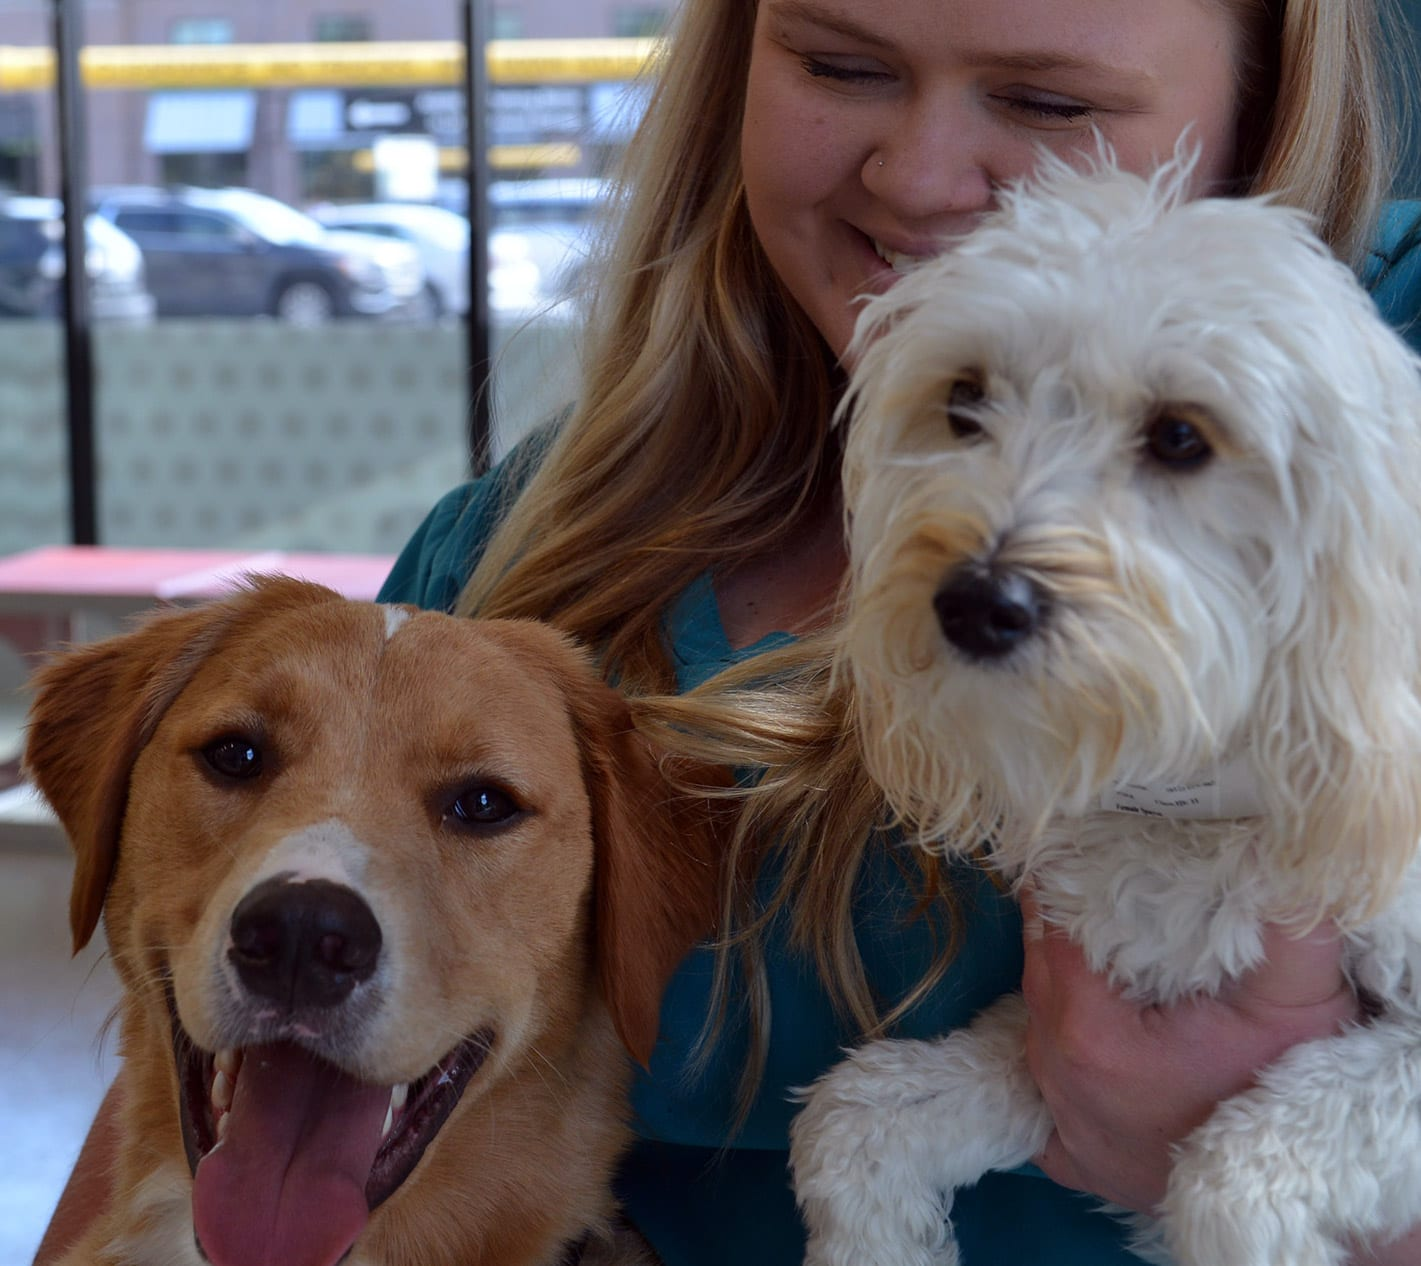 Two dogs being brought to WellHaven Pet Clinic